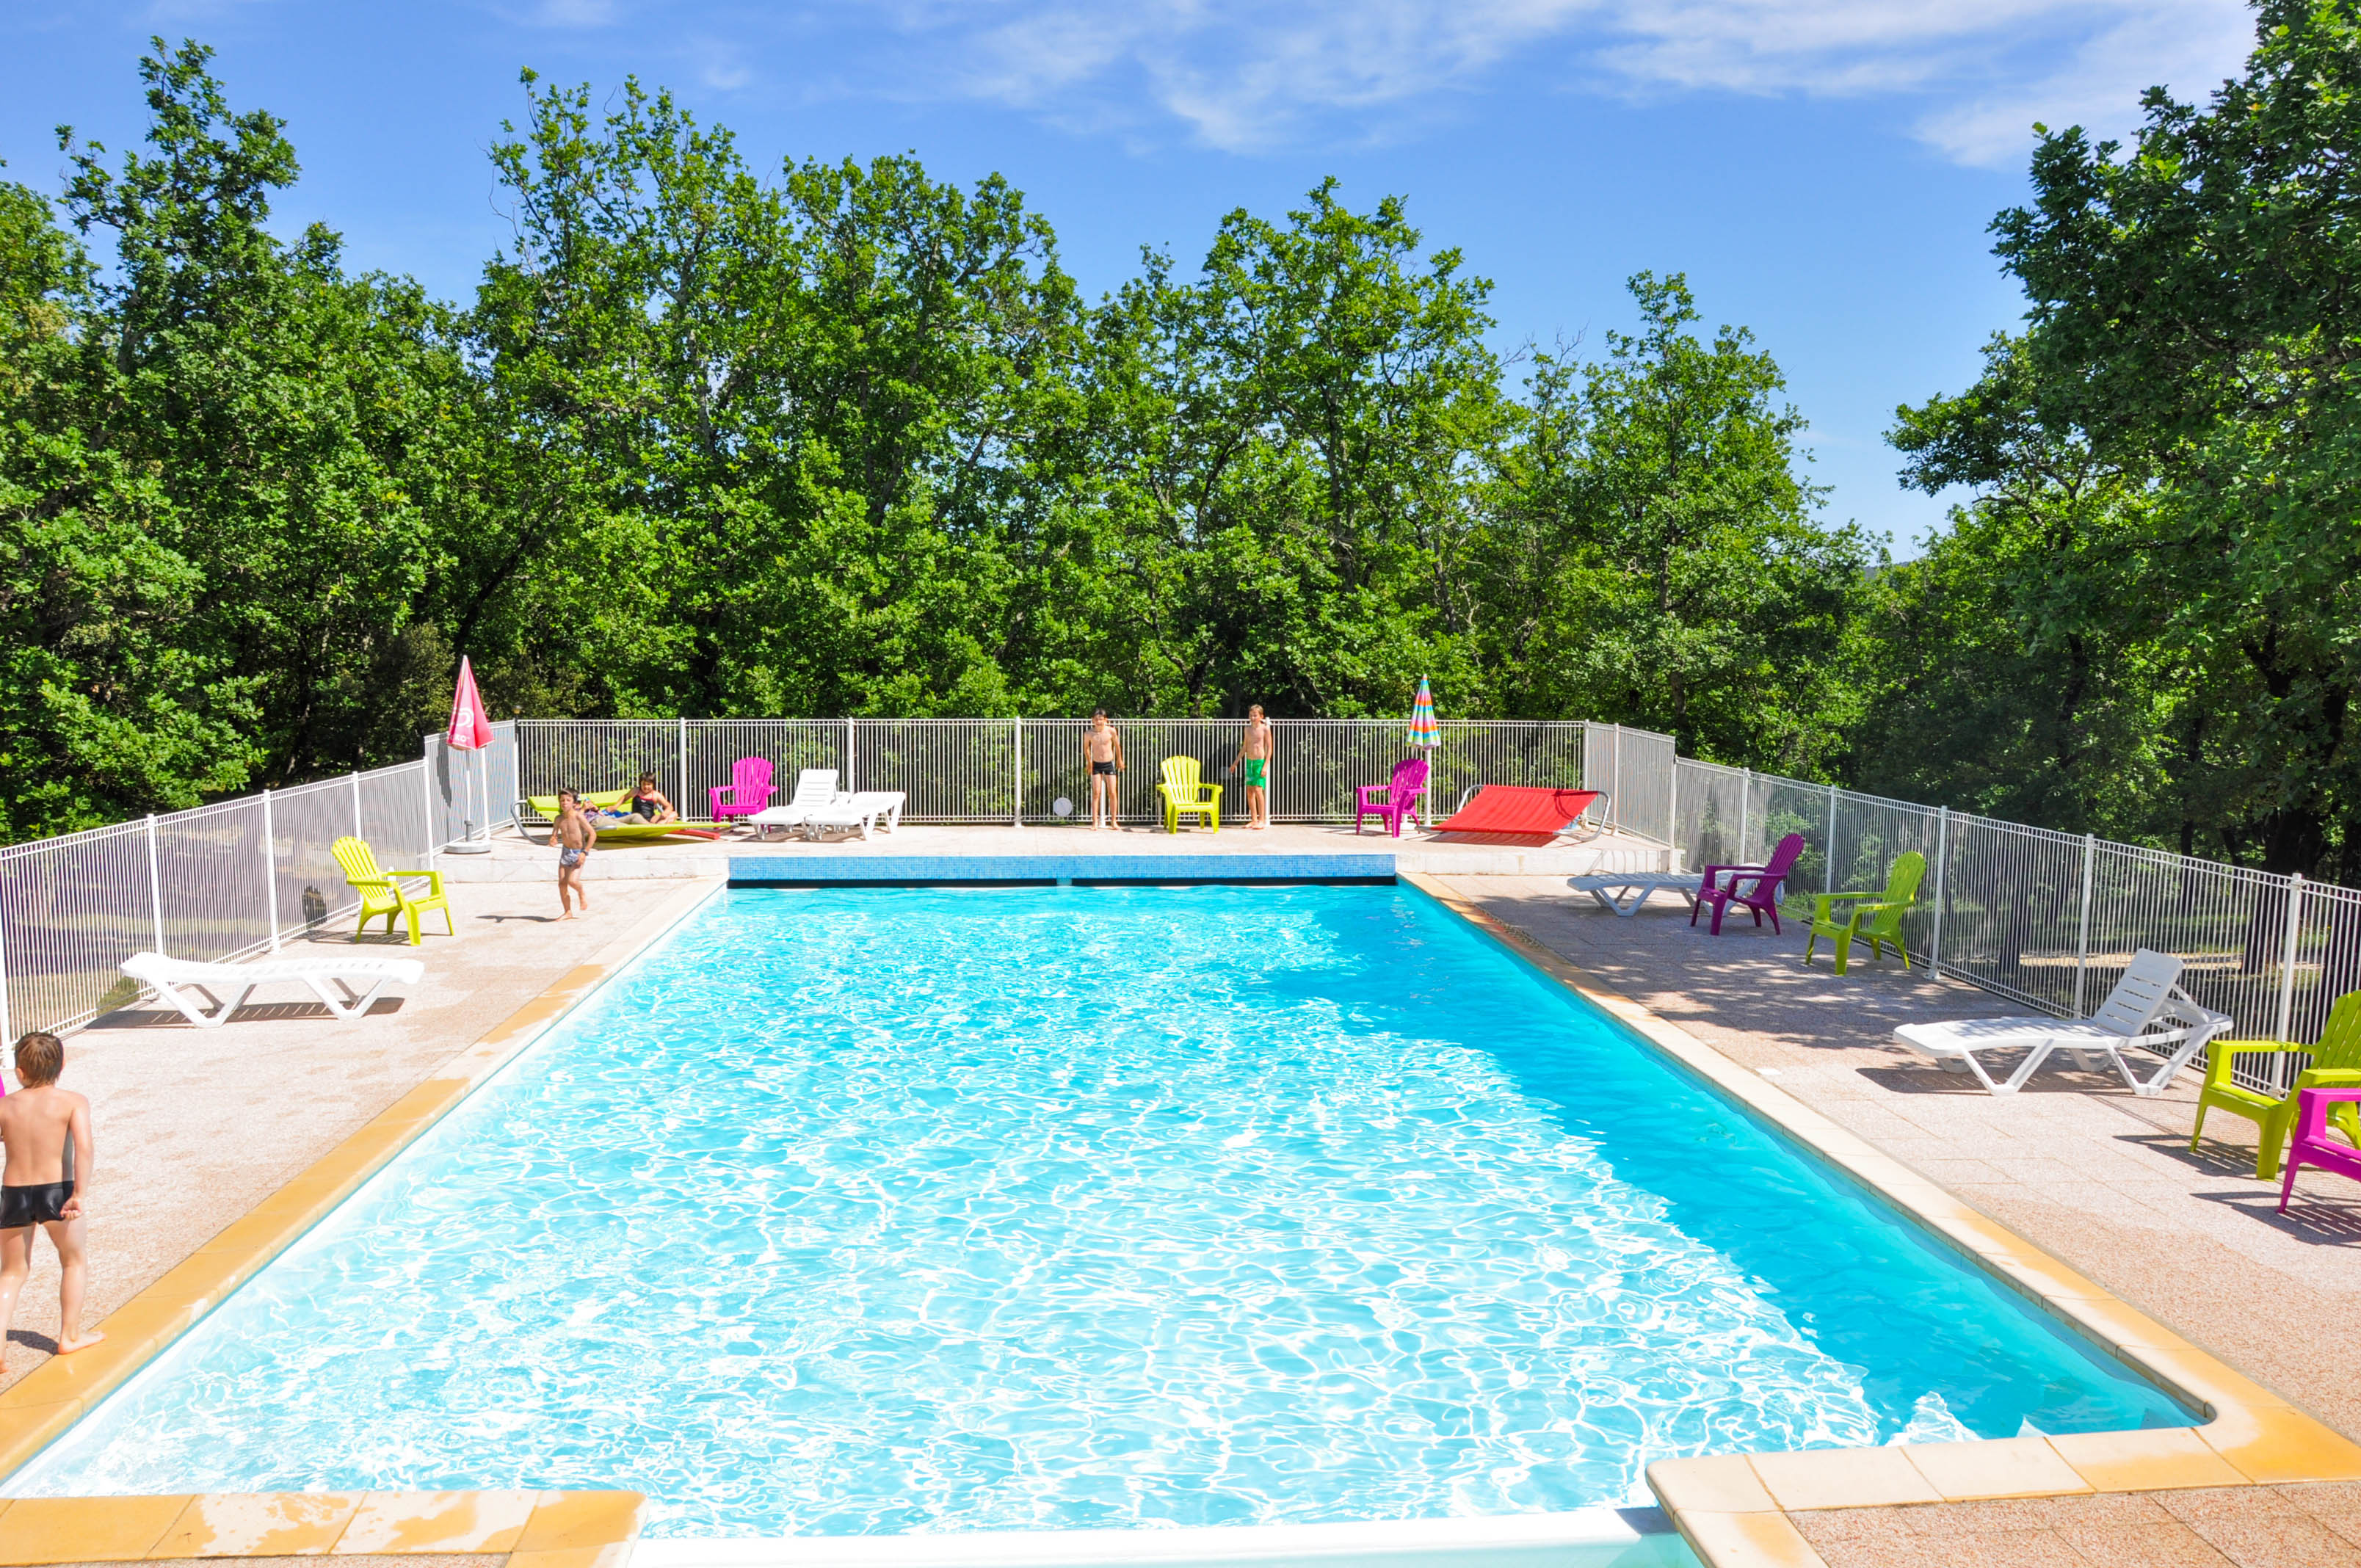 Camping vallon pont d arc avec piscine awesome inspection for Camping ruoms avec piscine